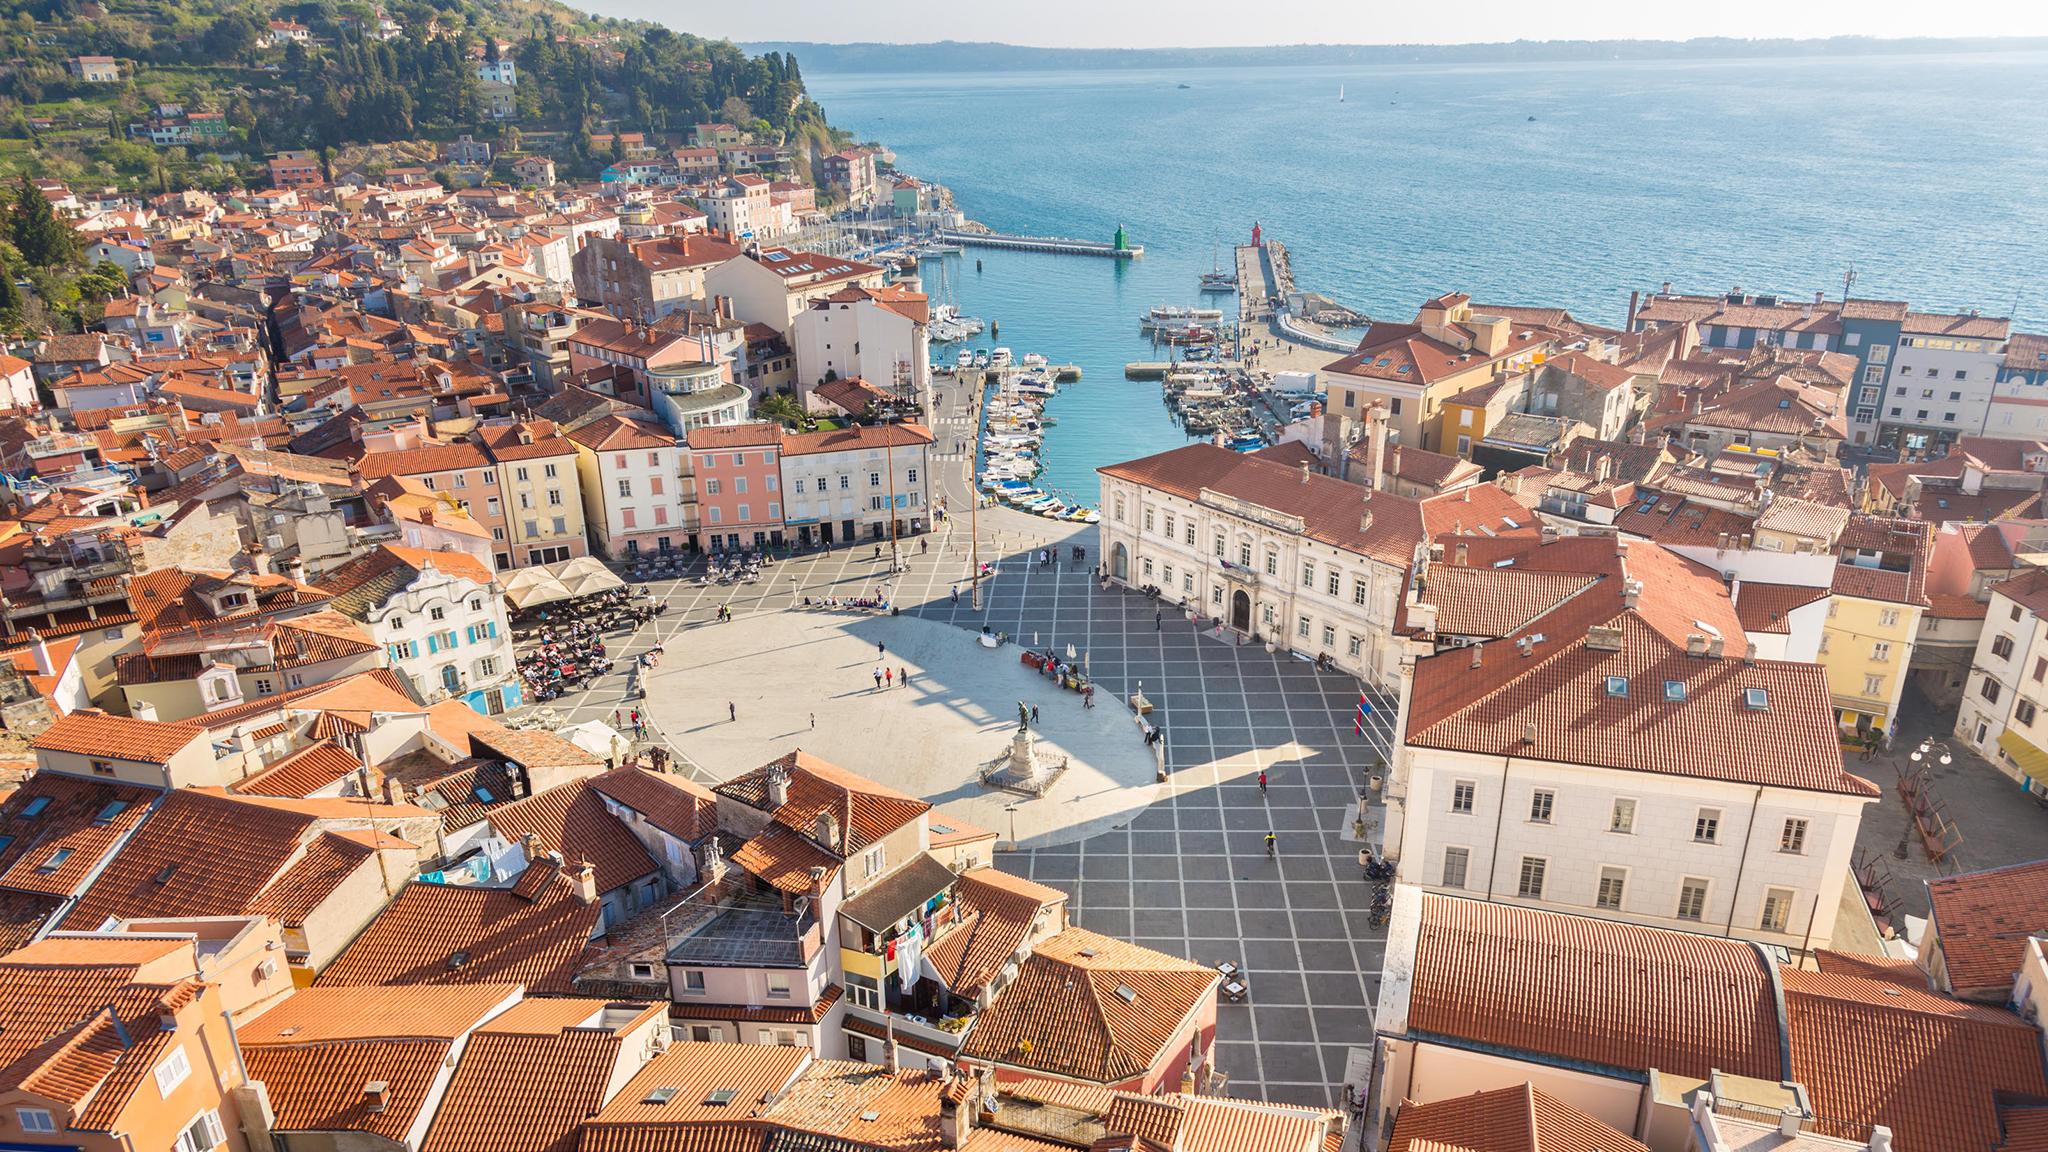 Why Slovenia's Piran is the antidote to Venice